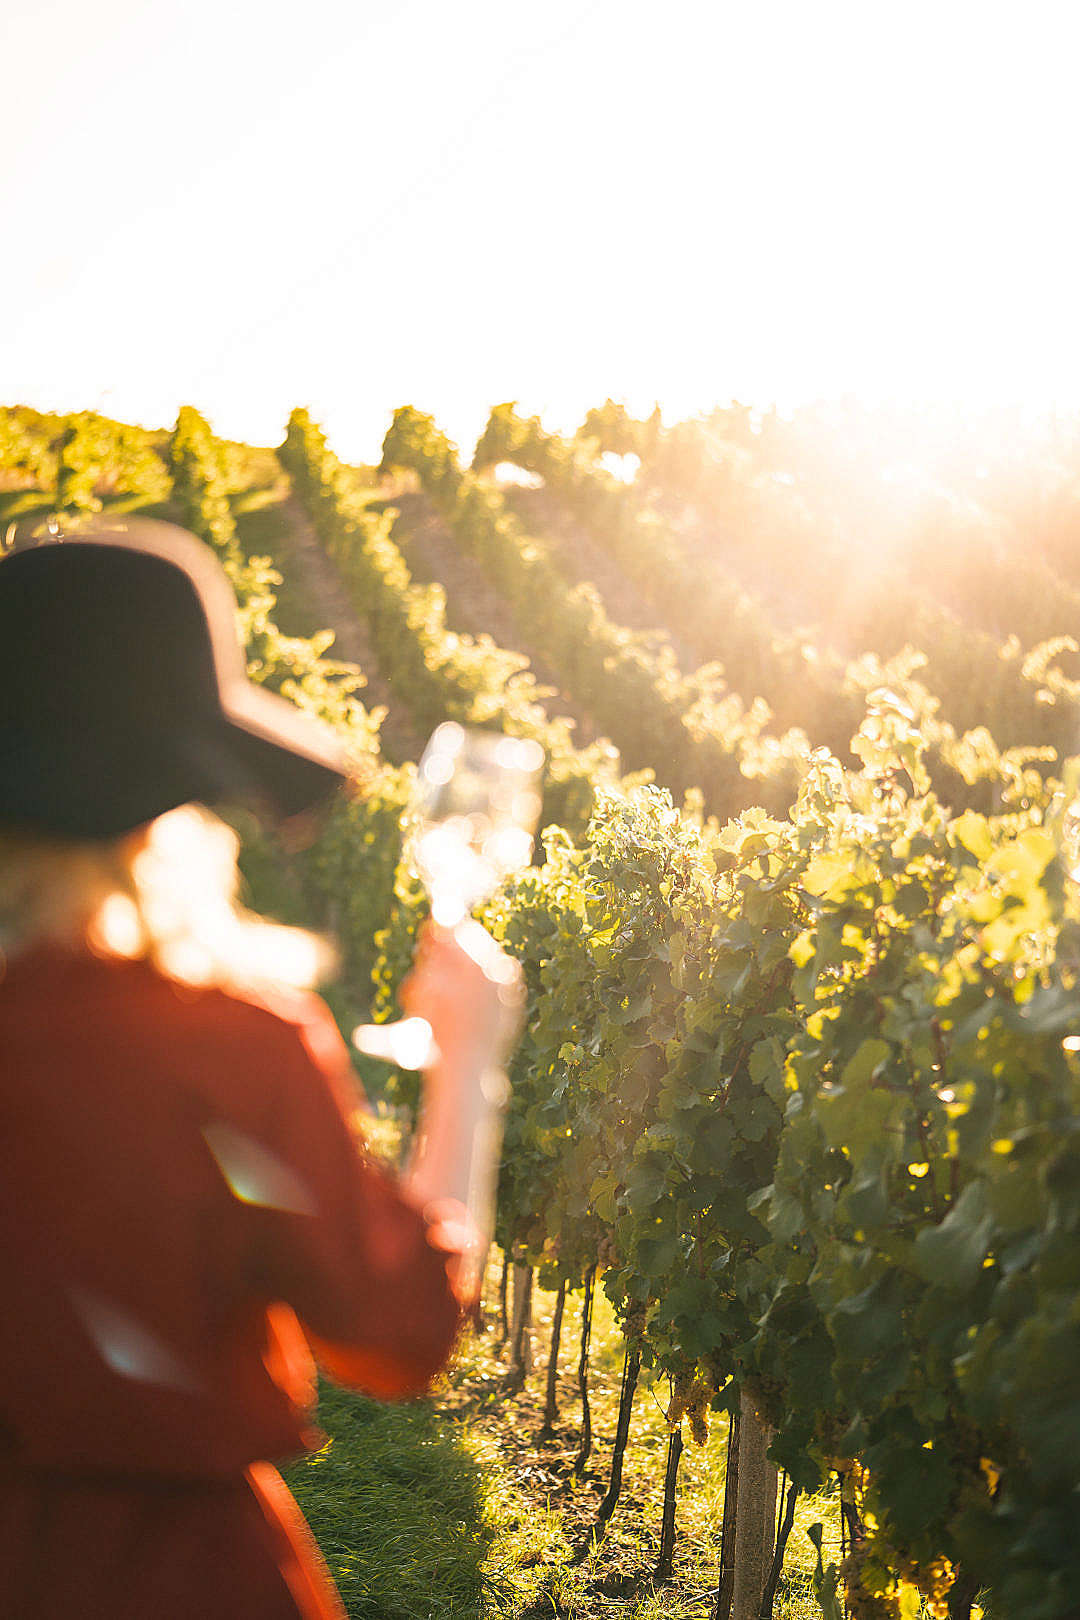 Download Woman Standing in The Vineyard FREE Stock Photo